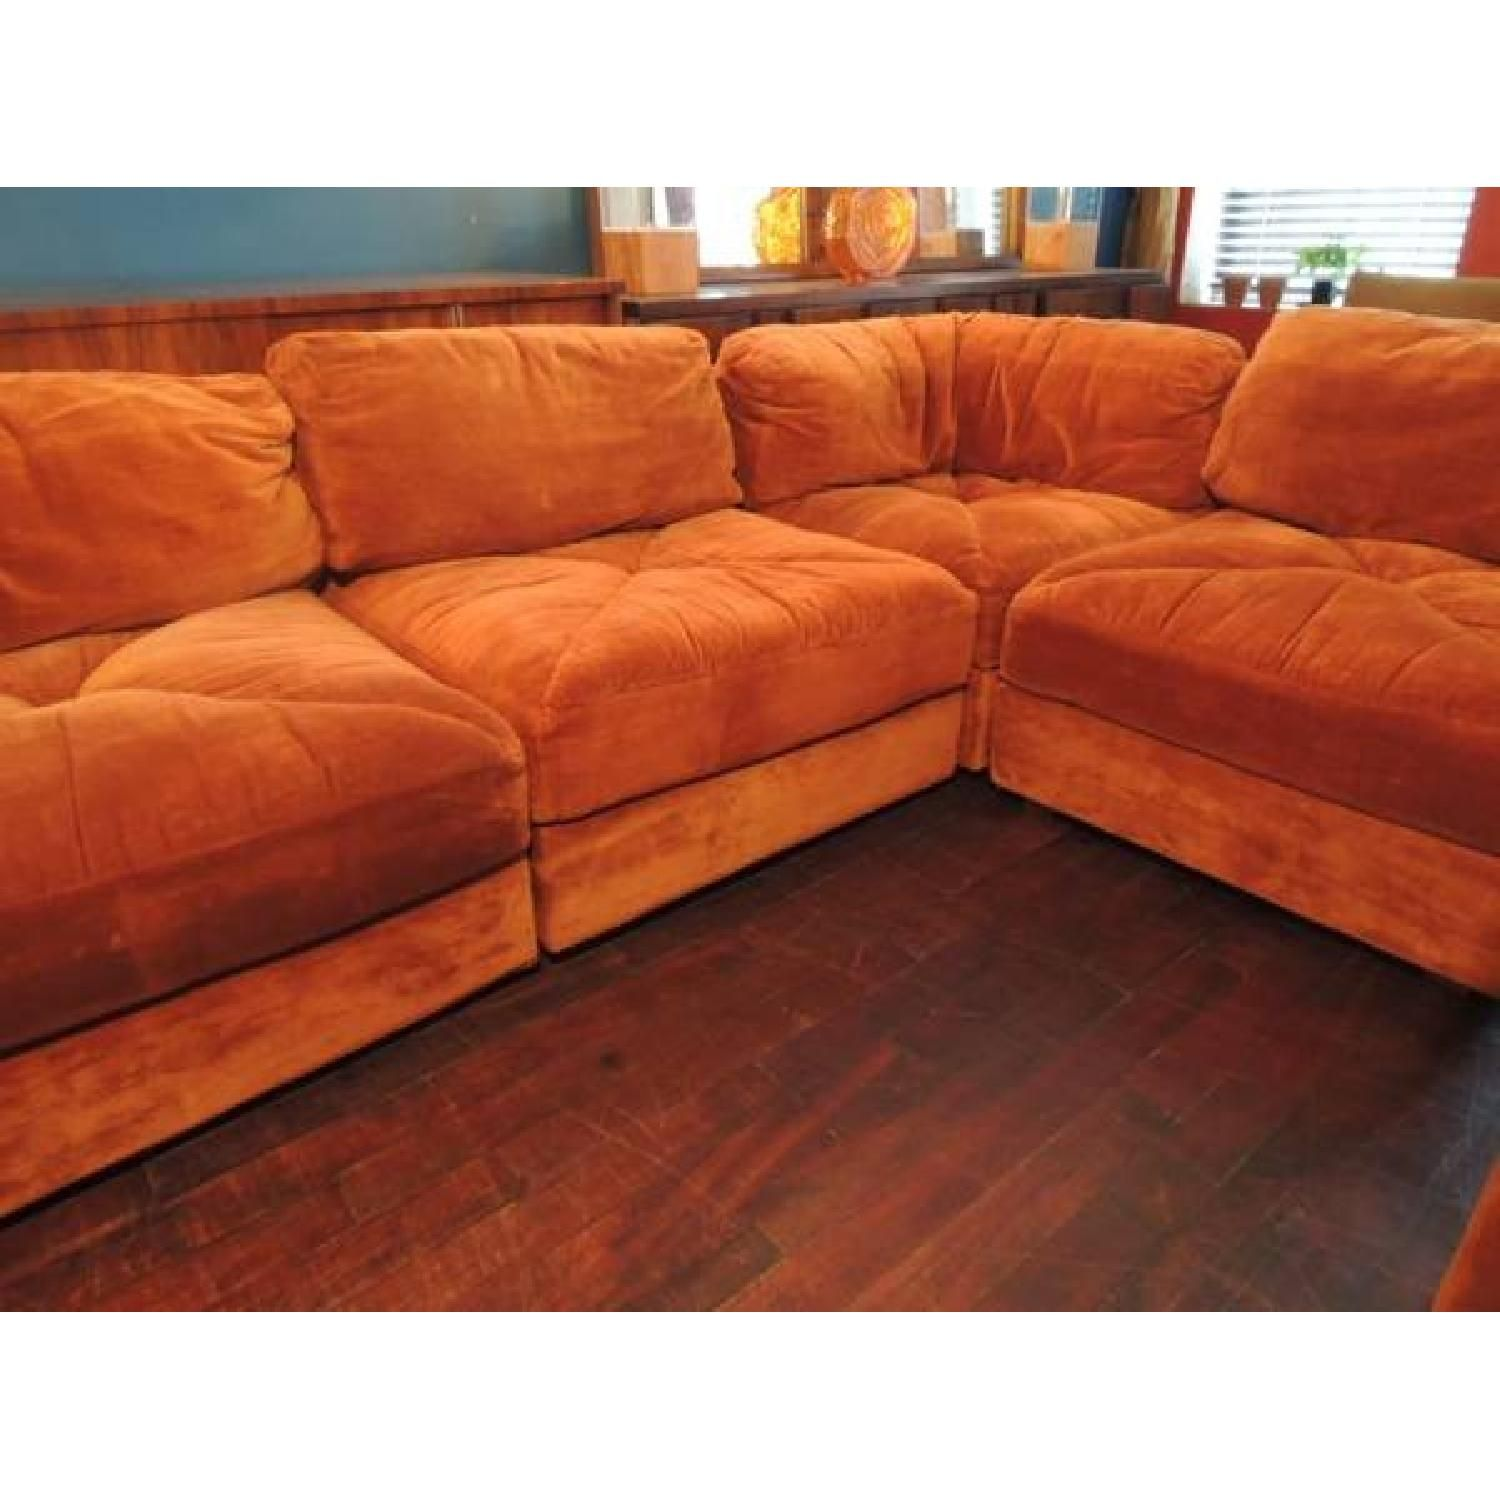 sofa and more mrs howard orange velvet sectional couch rocking chairs